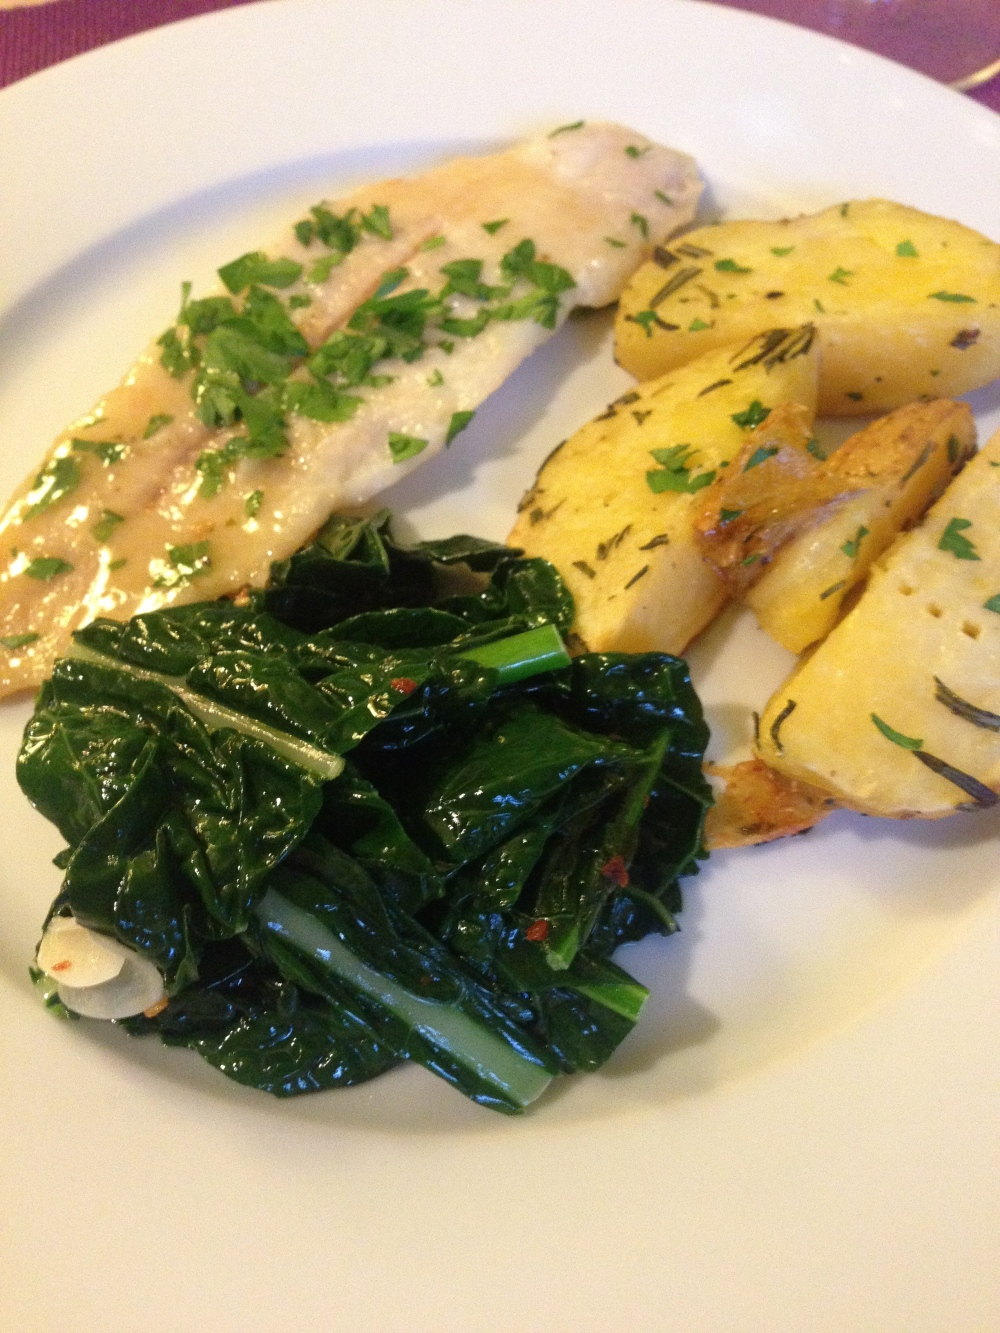 Sole meunière with Chard and Potatoes